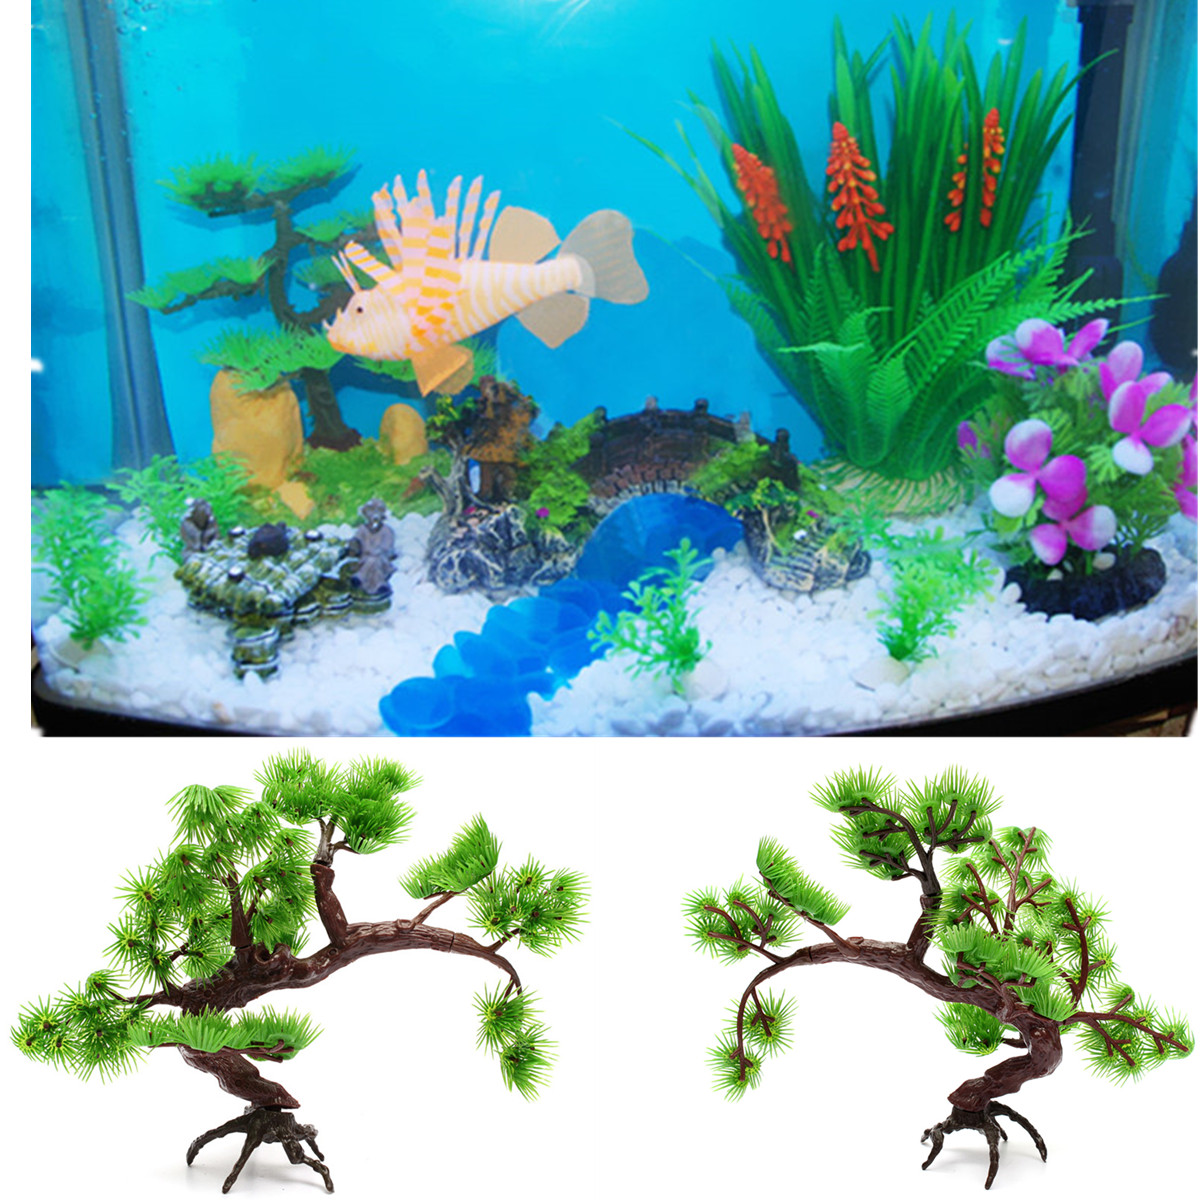 ... Arti ficial Plastic Bonsai Pine Tree Fish Tank Aquarium Ornament Decor